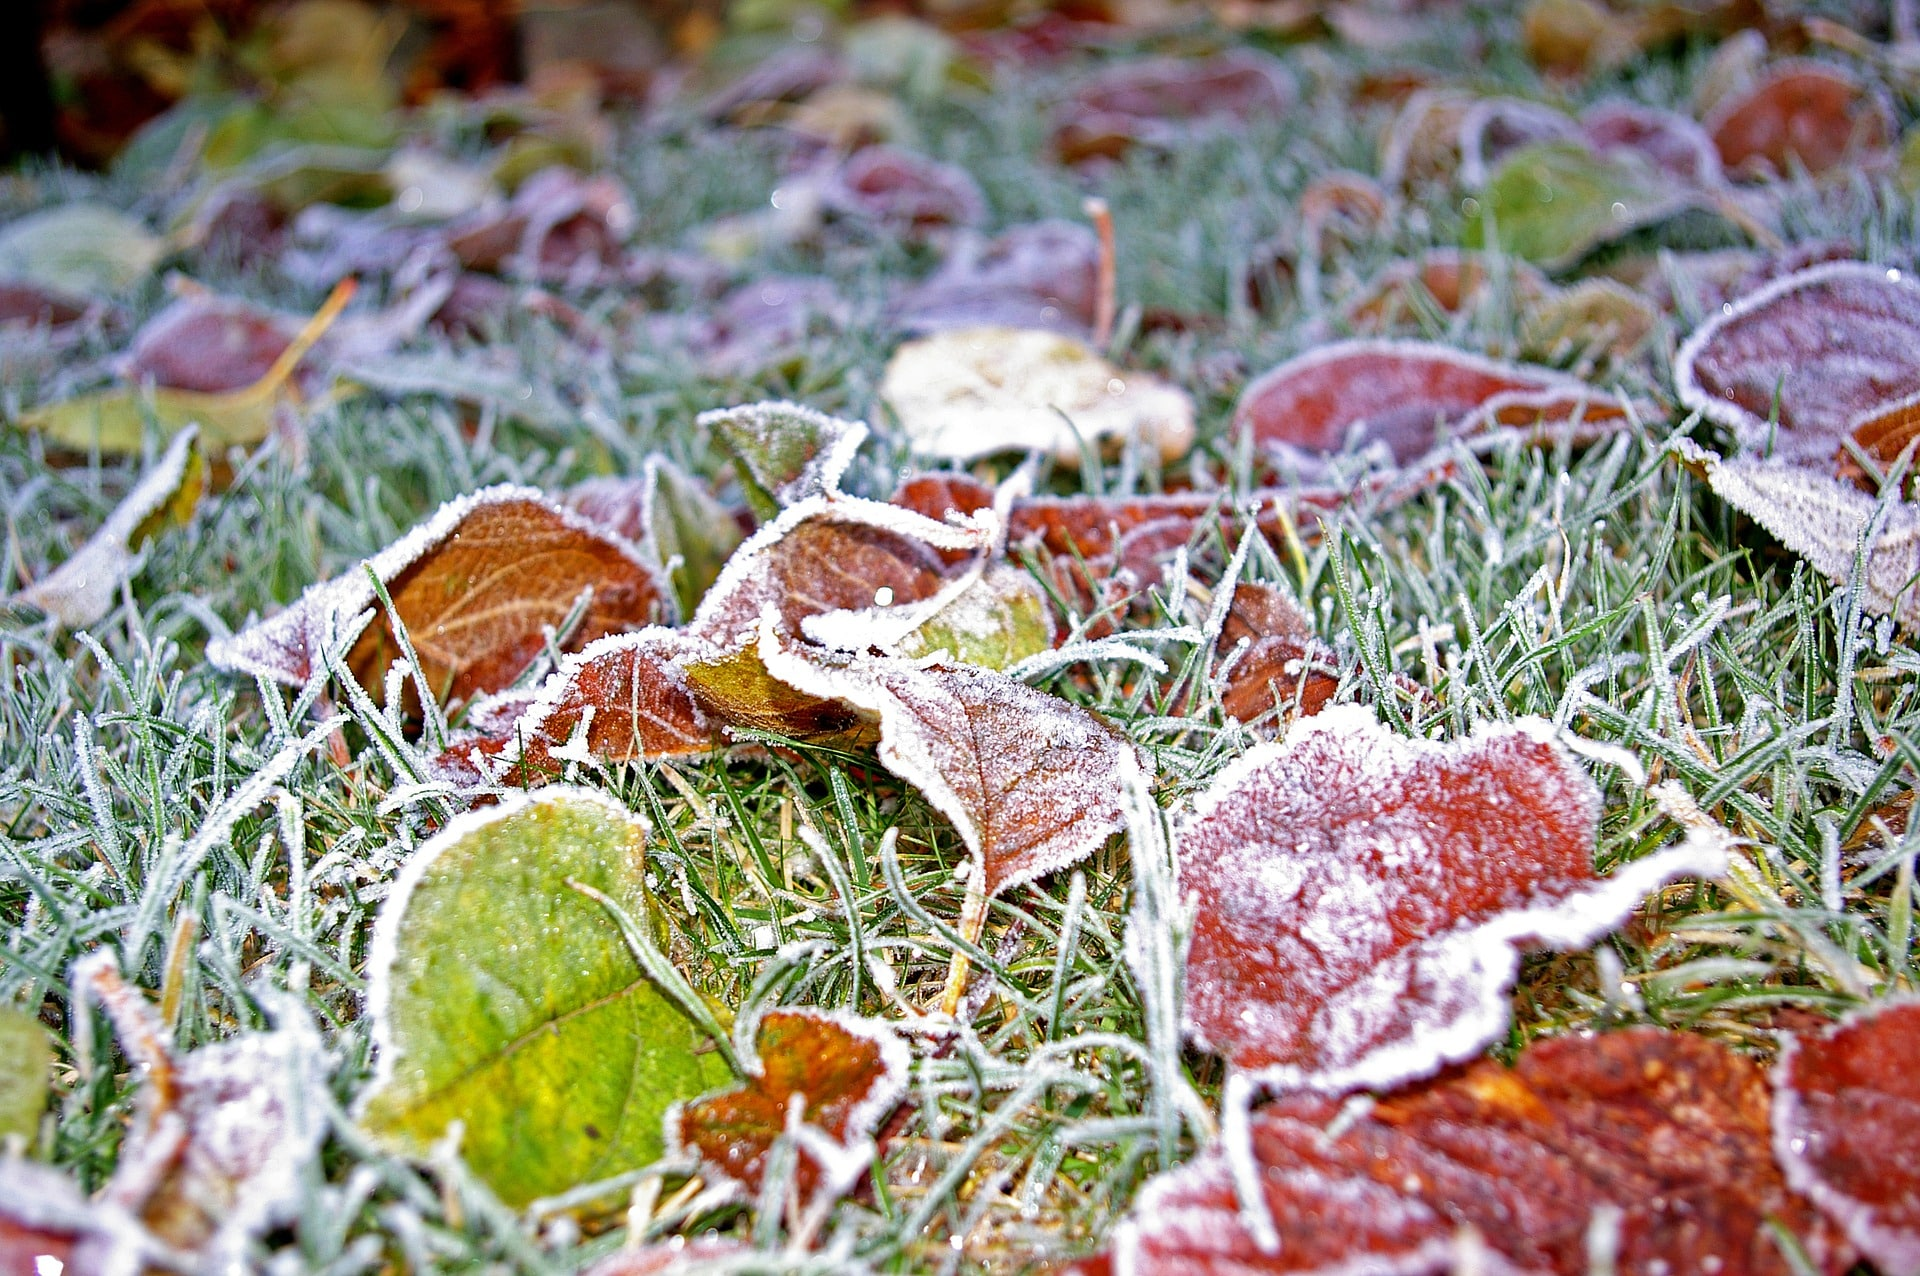 Winter Lawn Care & Maintenance 2017 - Featured Image